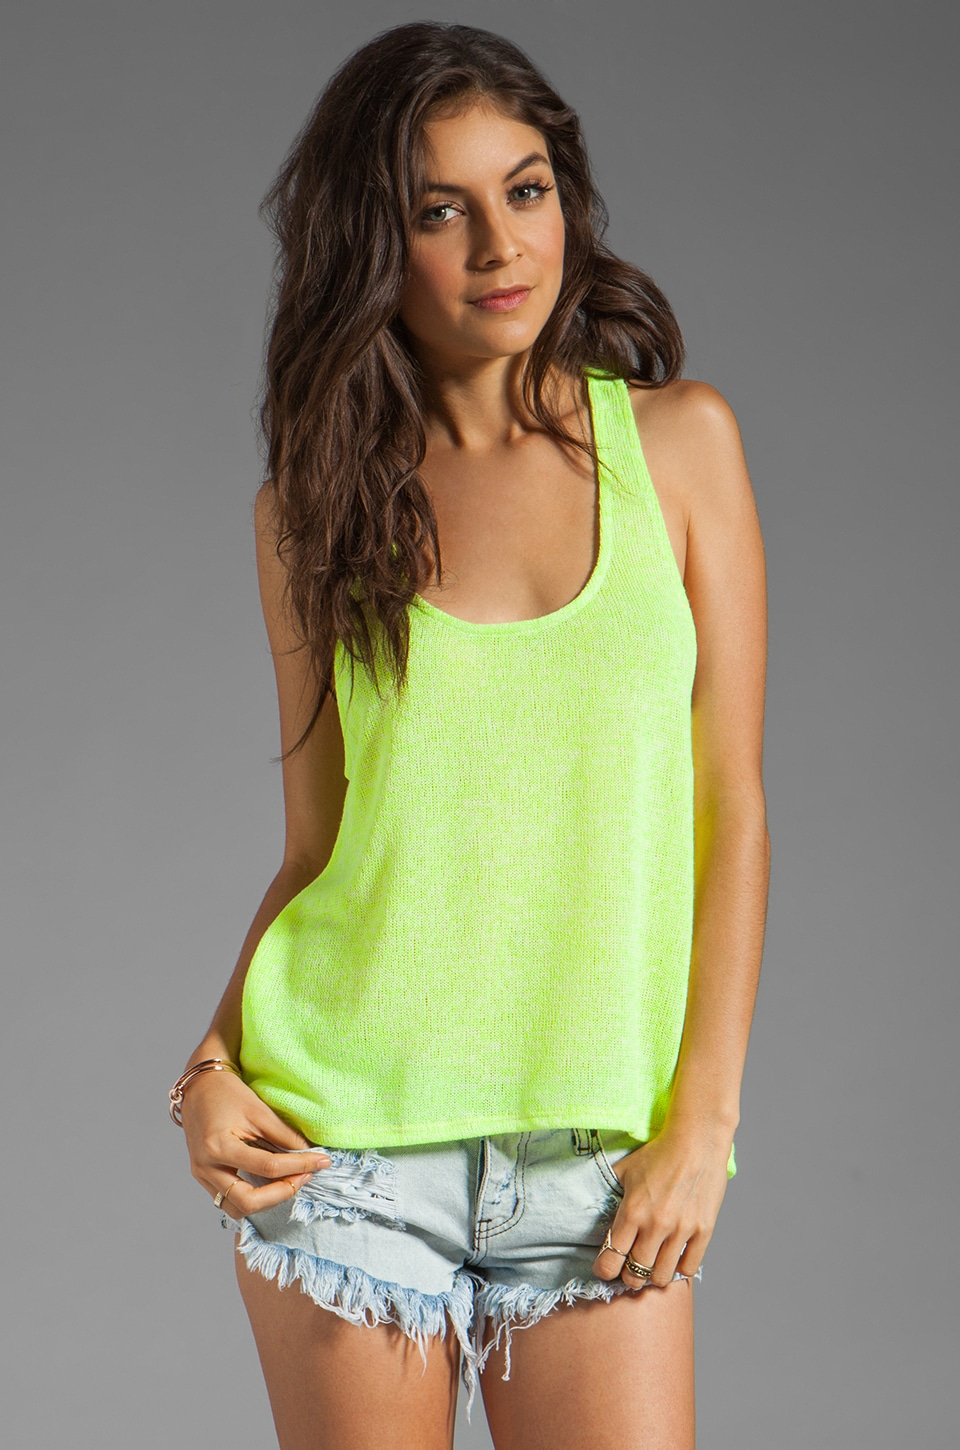 WOODLEIGH Addison Top in Neon Yellow